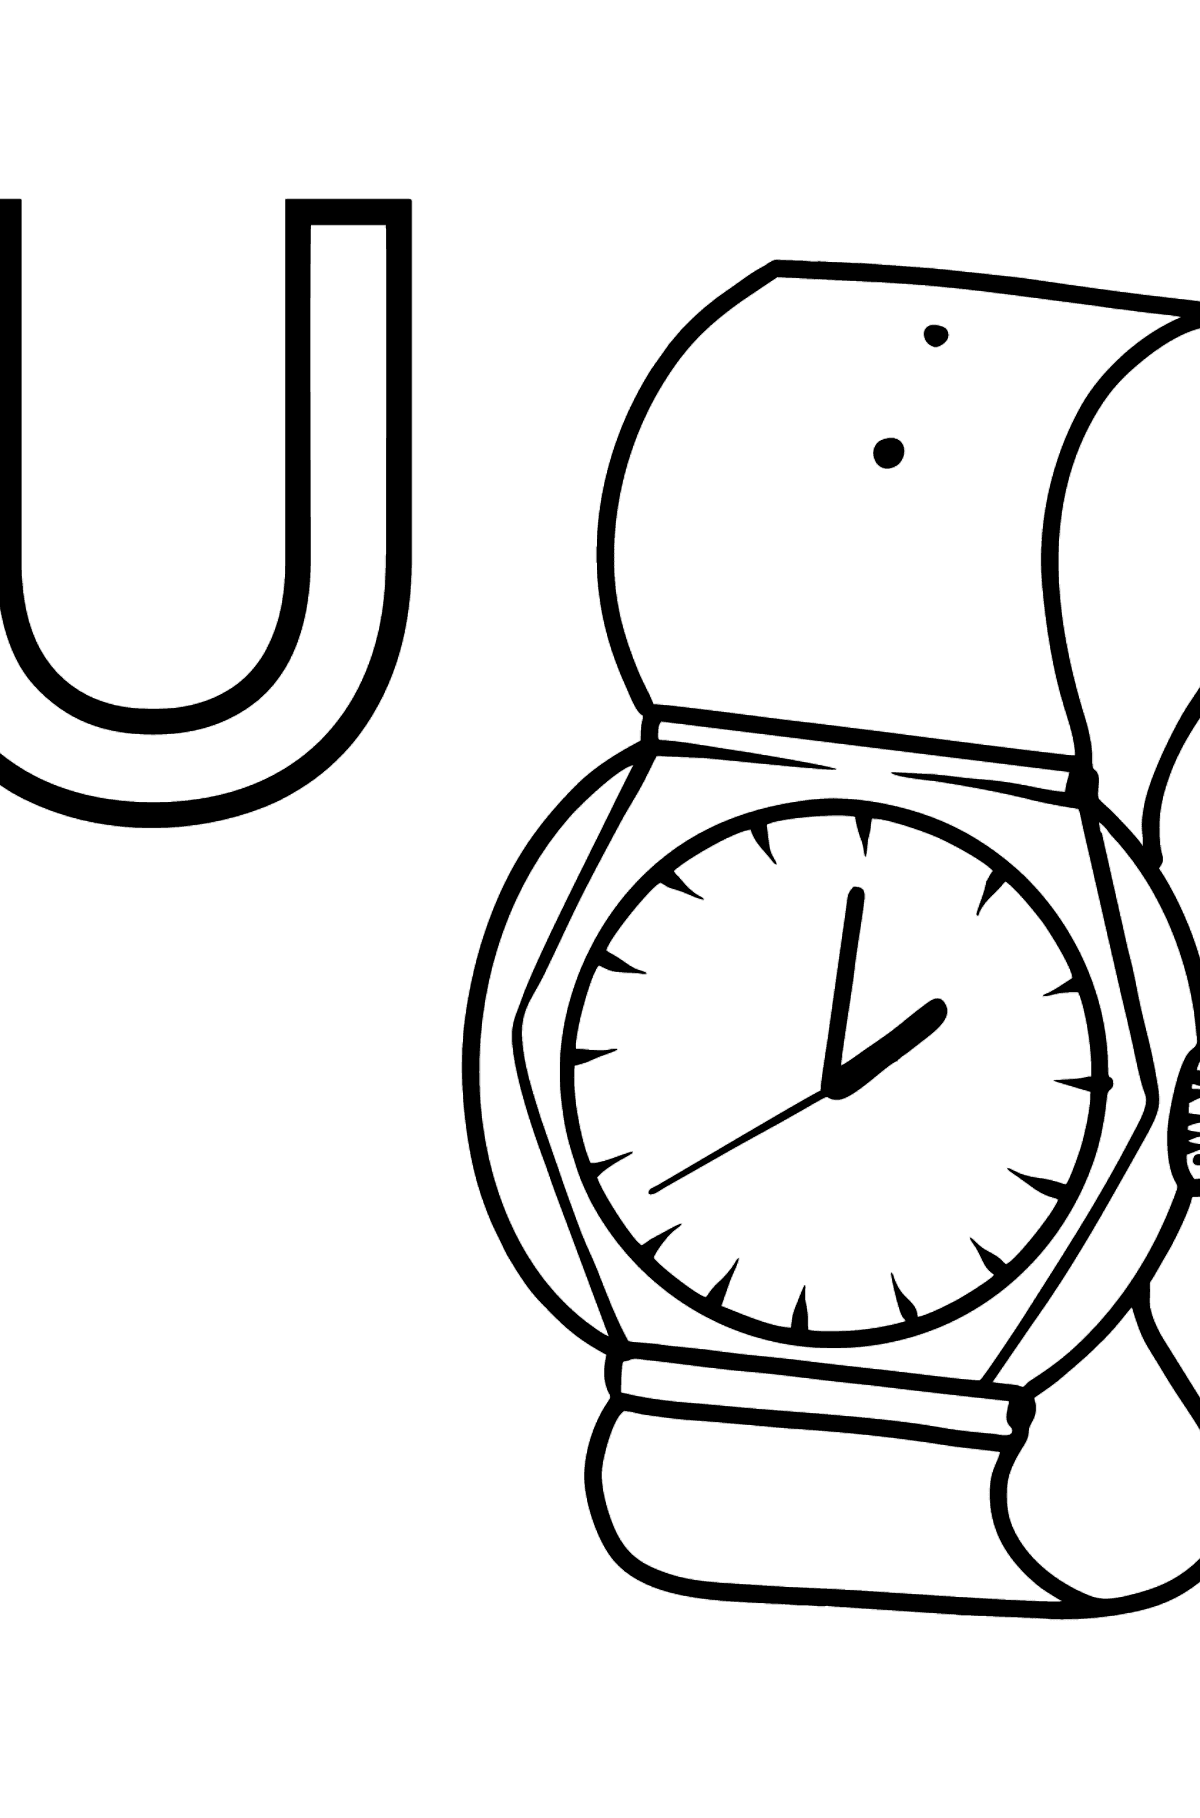 German Letter U coloring pages - UHR - Coloring Pages for Kids